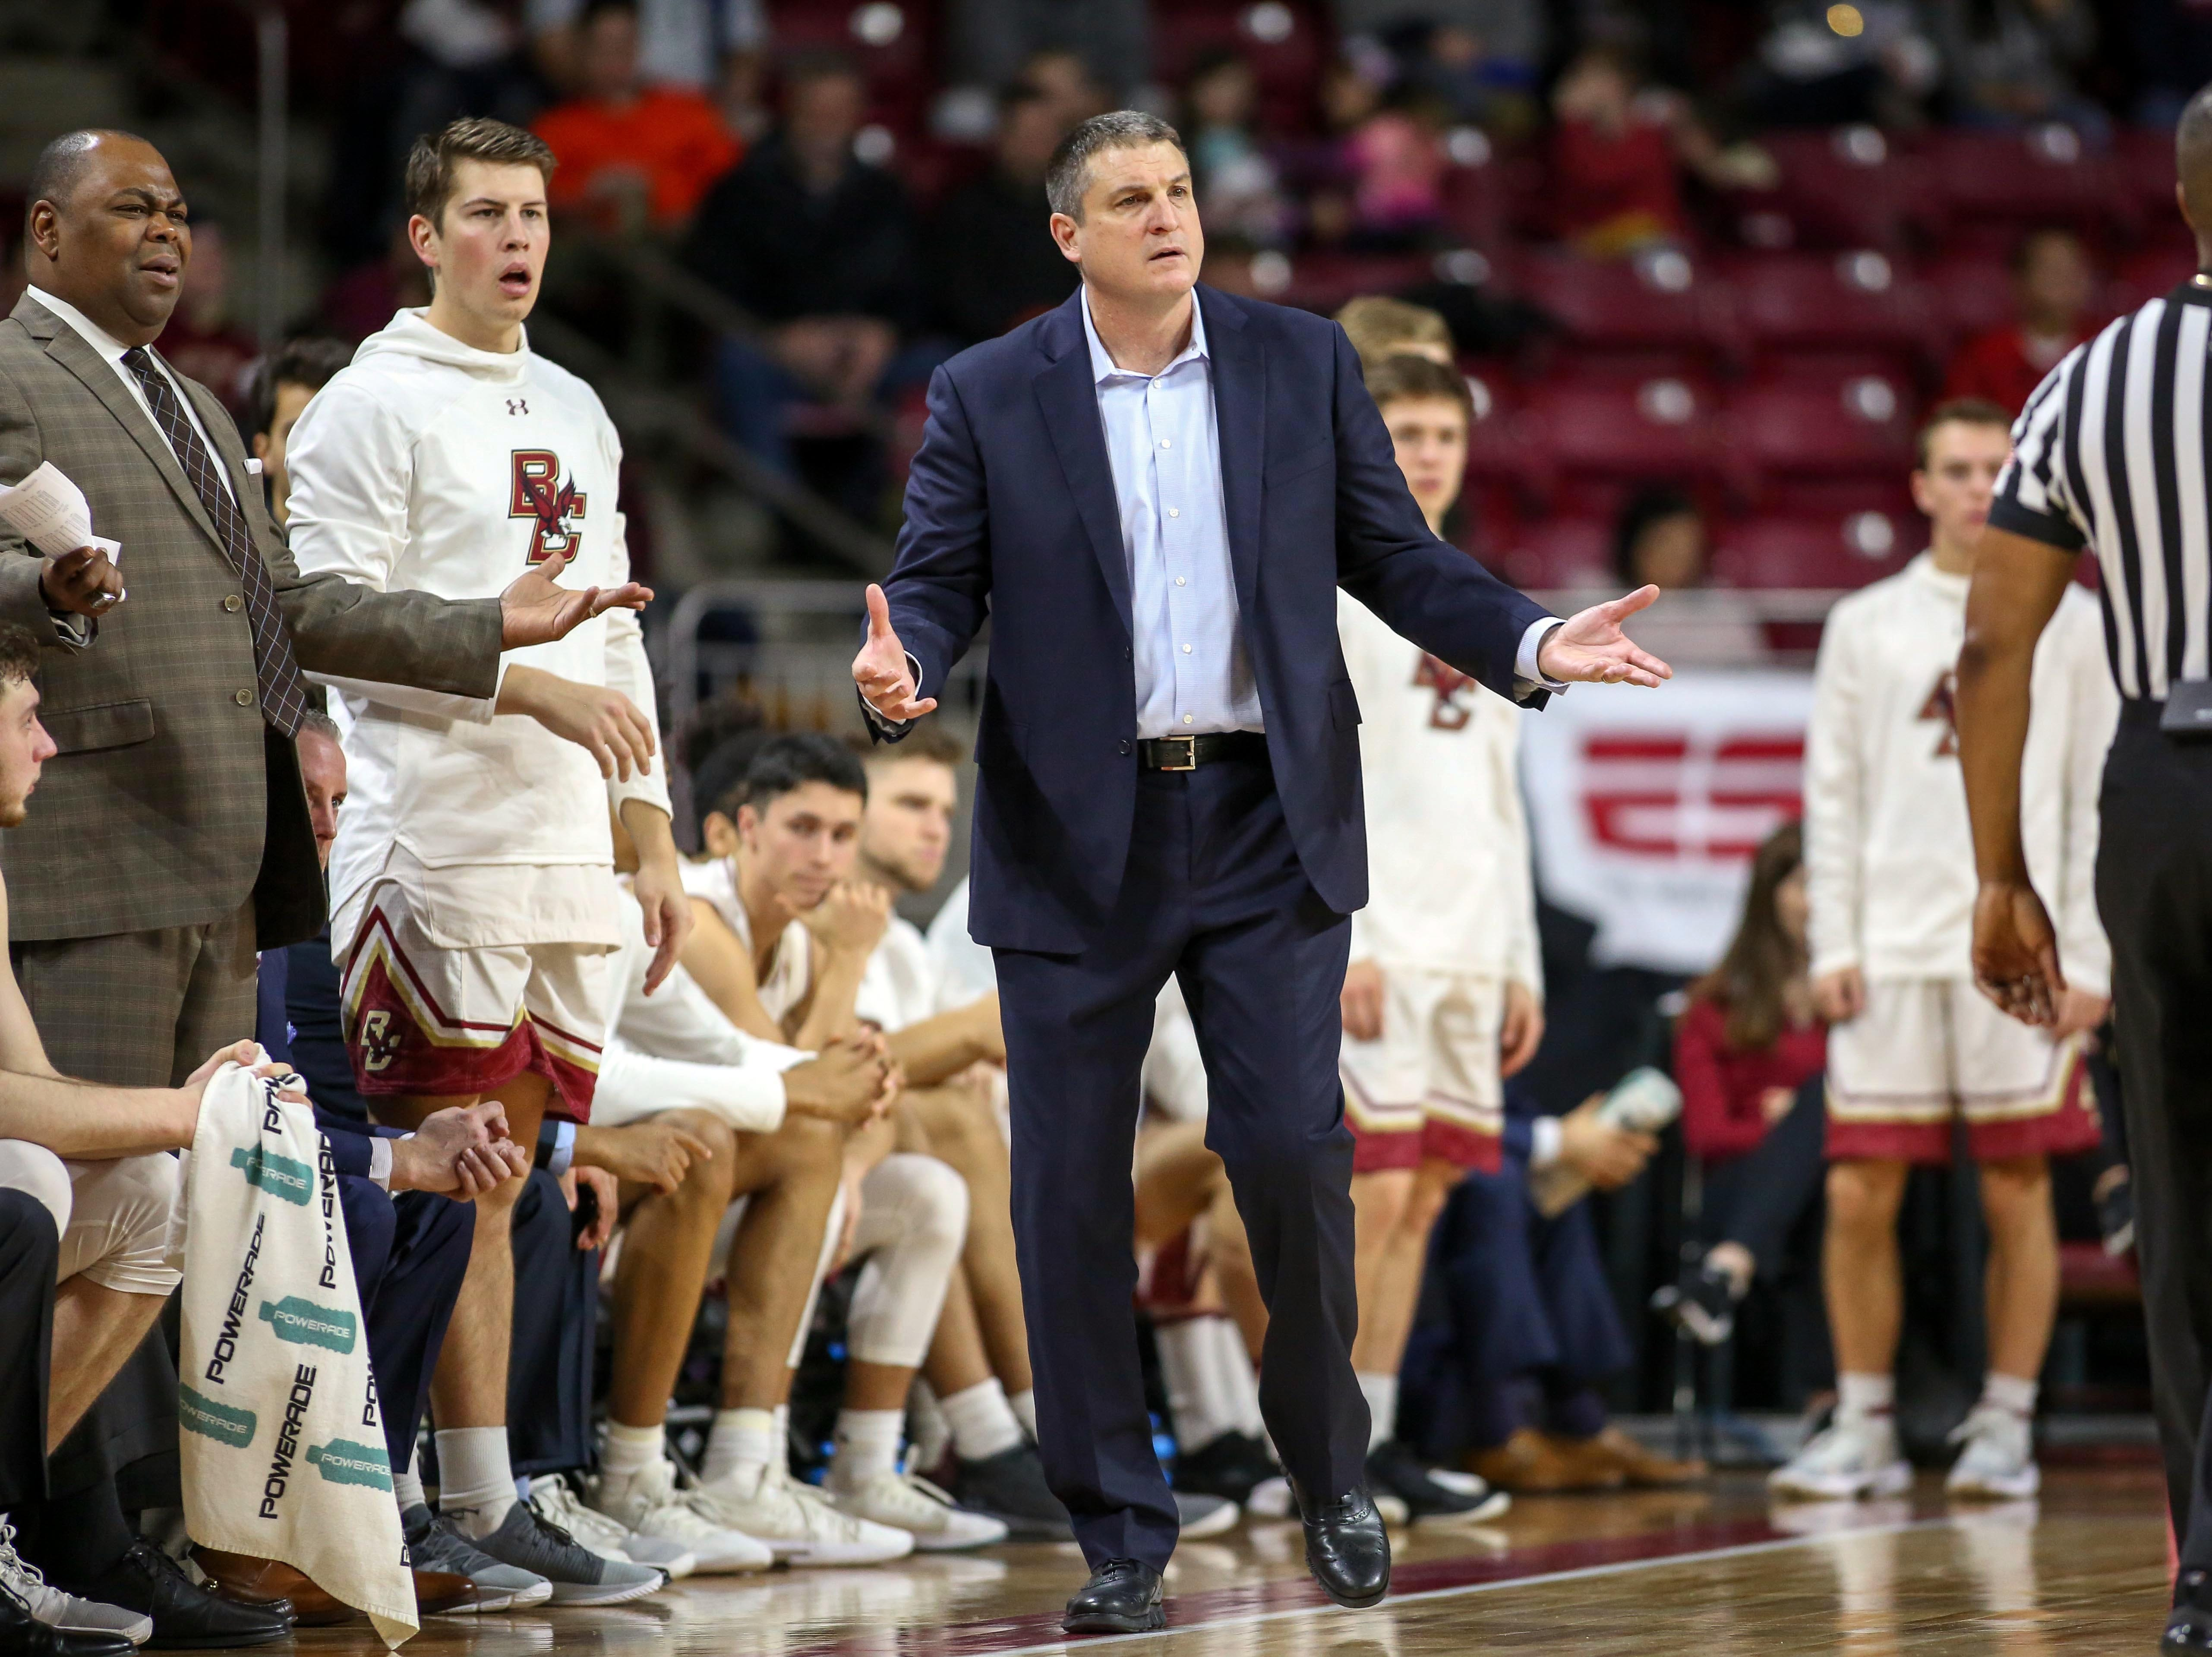 Jan 20, 2019; Chestnut Hill, MA, USA; Boston College Eagles head coach Jim Christian reacts against the Florida State Seminoles during the first half at Conte Forum. Mandatory Credit: Paul Rutherford-USA TODAY Sports